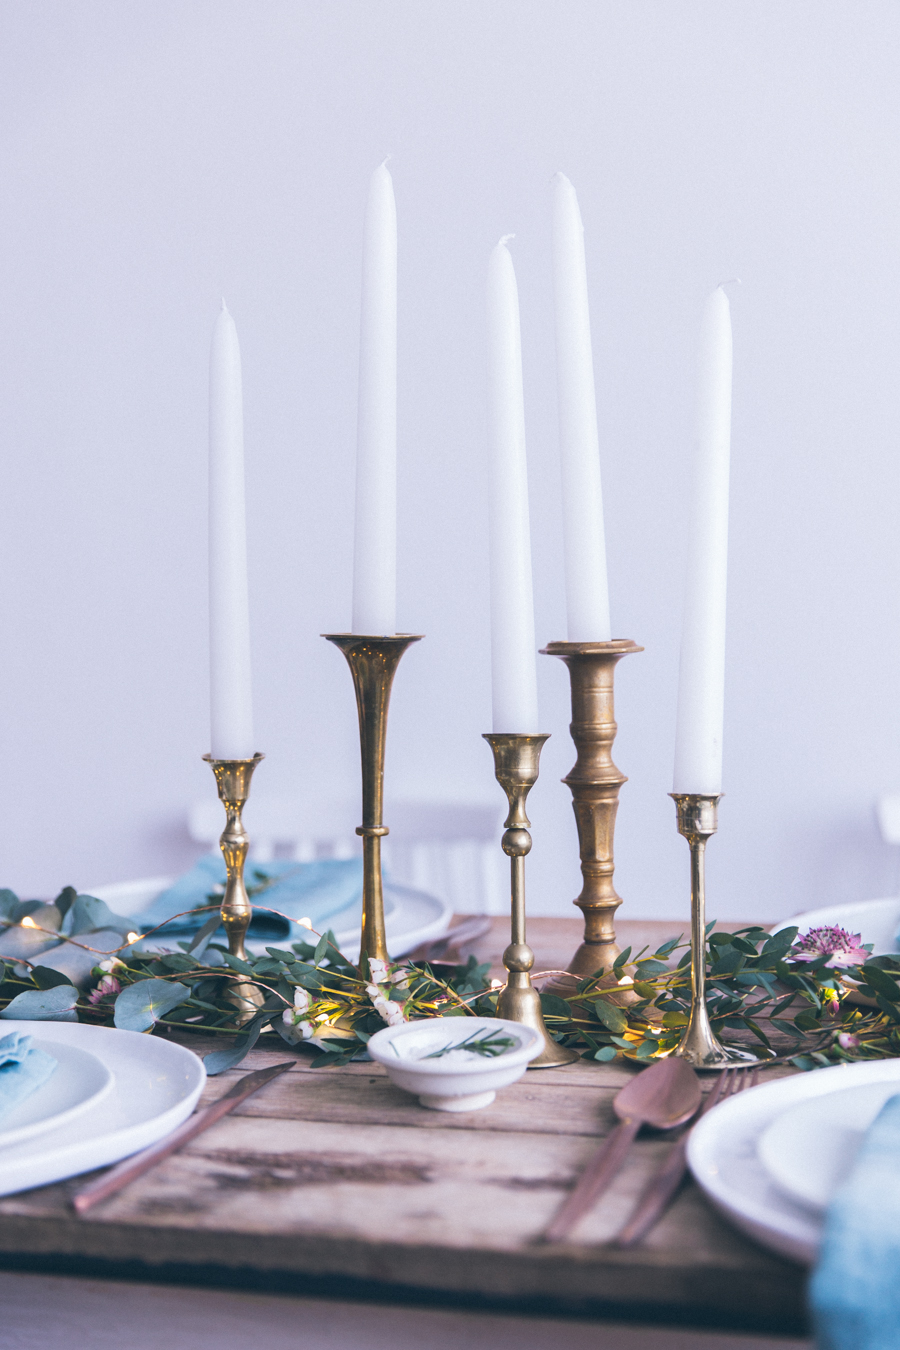 Idées décoration table de Noël 2016 2017 - style rustique scandinave - assiettes Merci - Shooting Inspiration dressage table de fêtes ou mariage scandinave - blog lifestyle dollyjessy